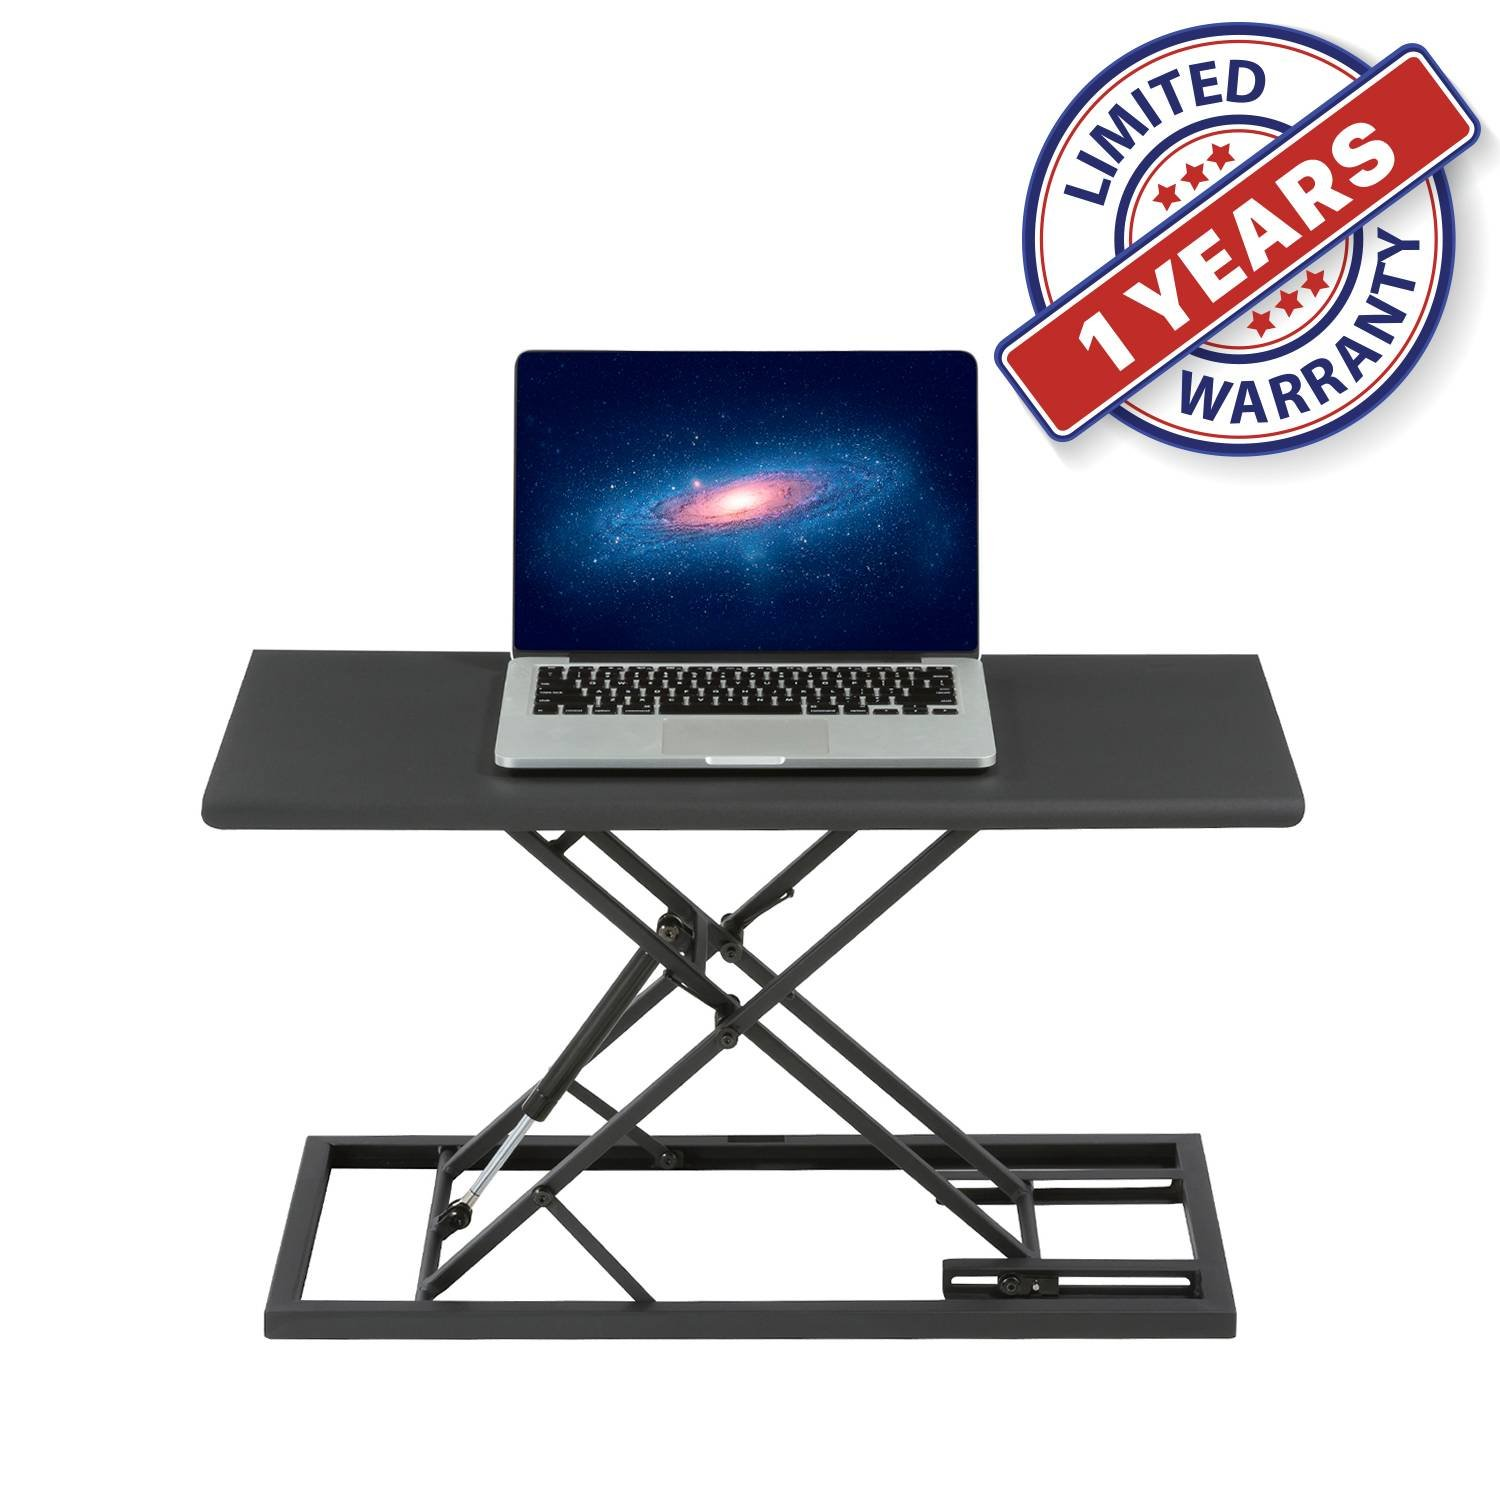 Light Weight Portable Work Station Standing Desk with Ultra Thin Design and Adjustable Height for Carry On Laptop Mobile Office